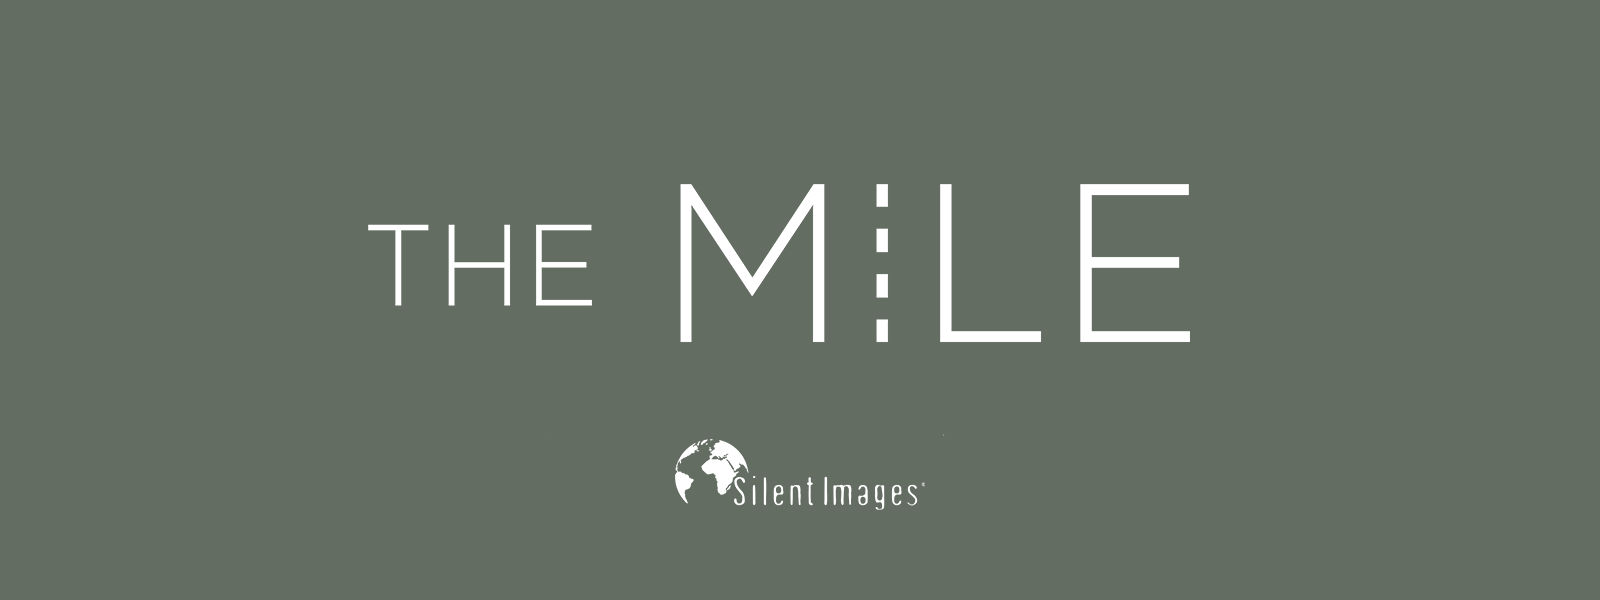 Similarities & Differences: The Mile Project